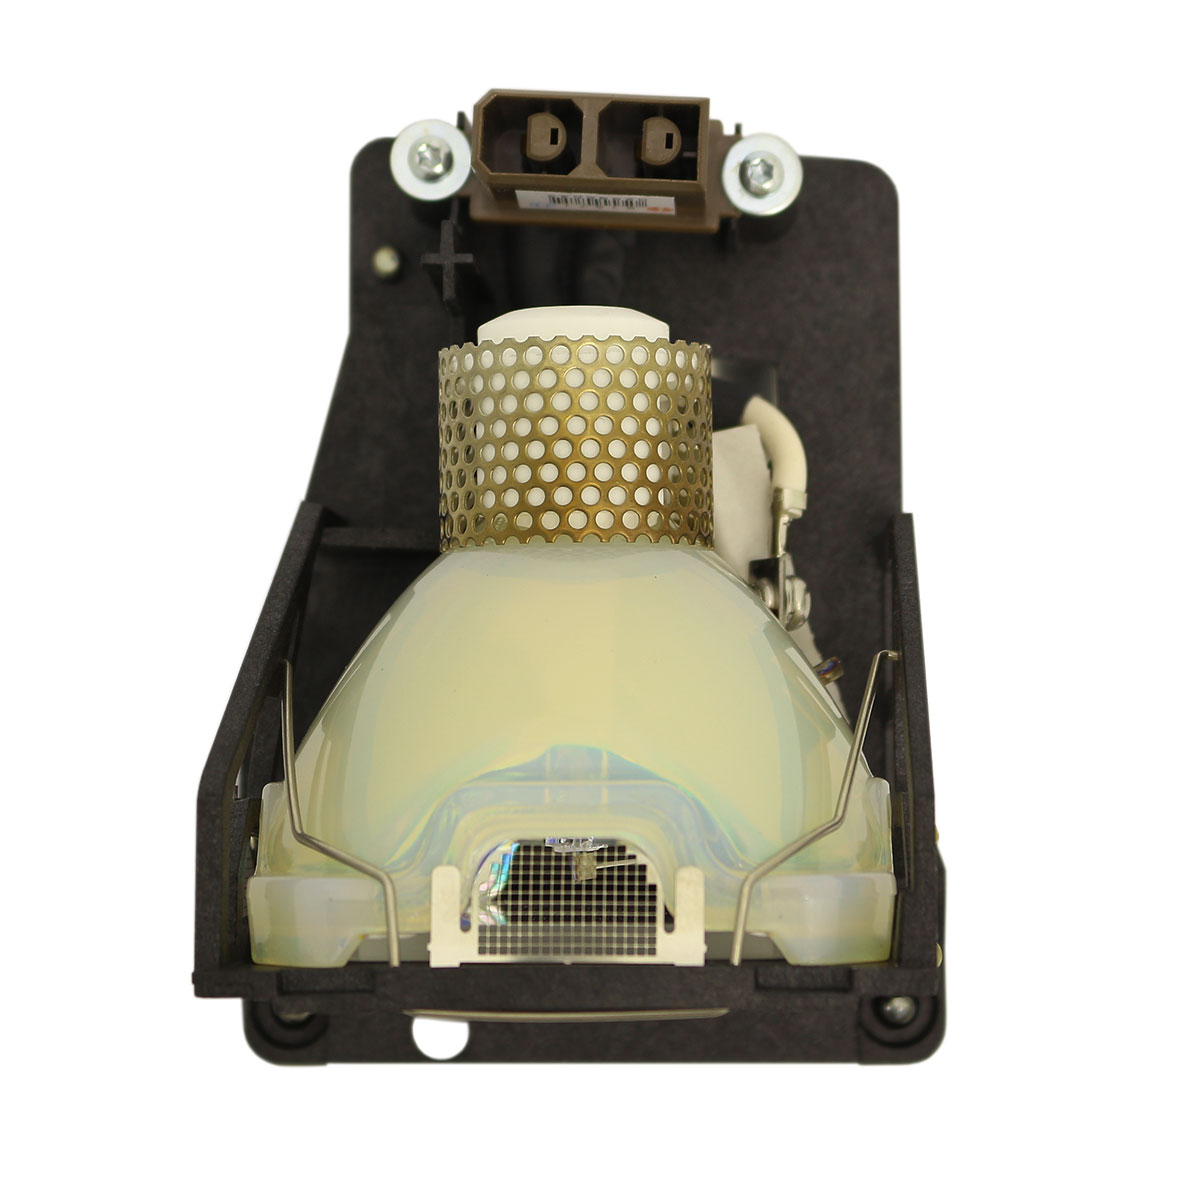 Original Phoenix Projector Lamp Replacement with Housing for Geha 60-252367